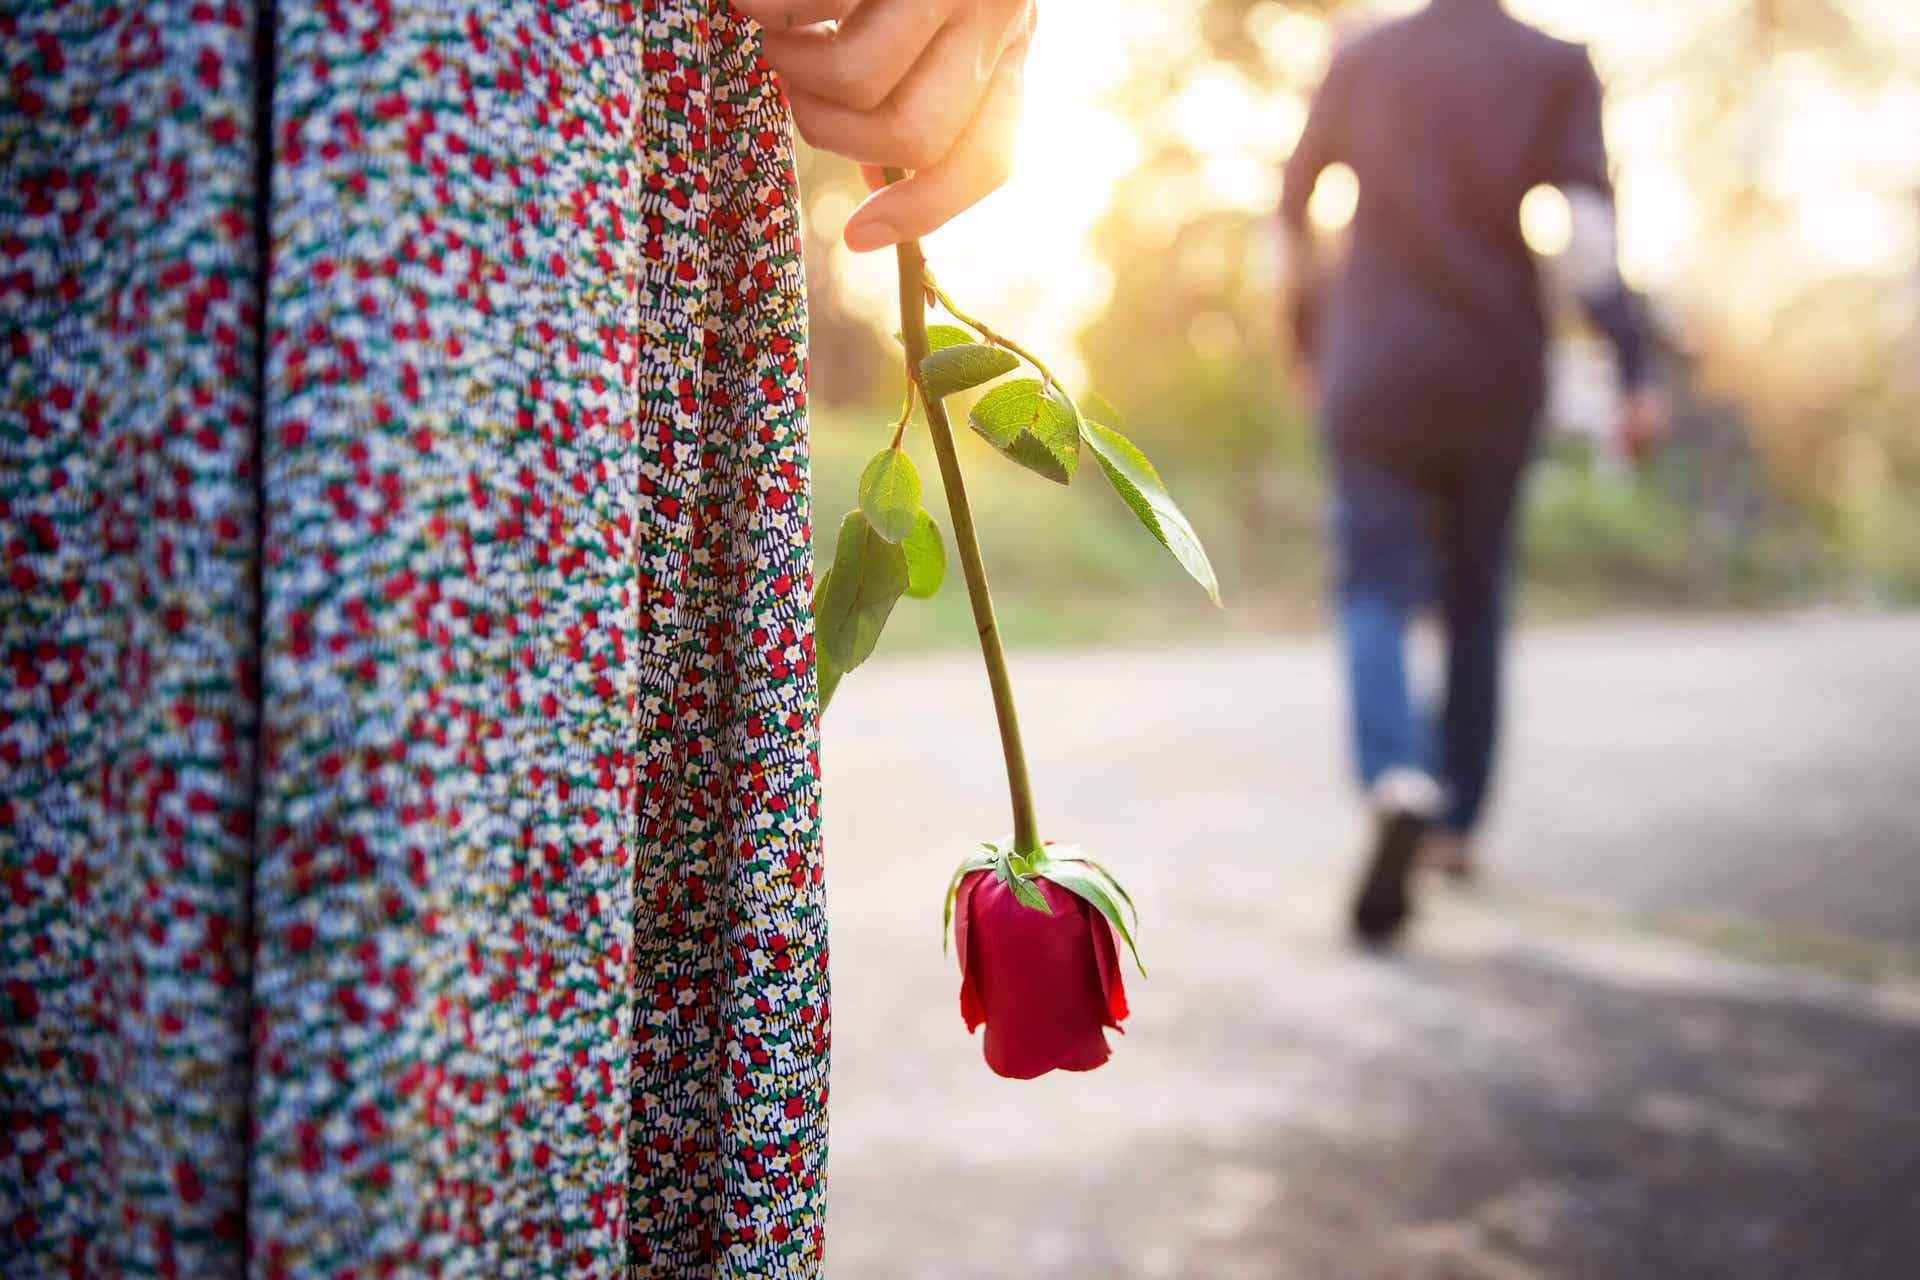 A man walking away from a woman holding a rose down by her side.